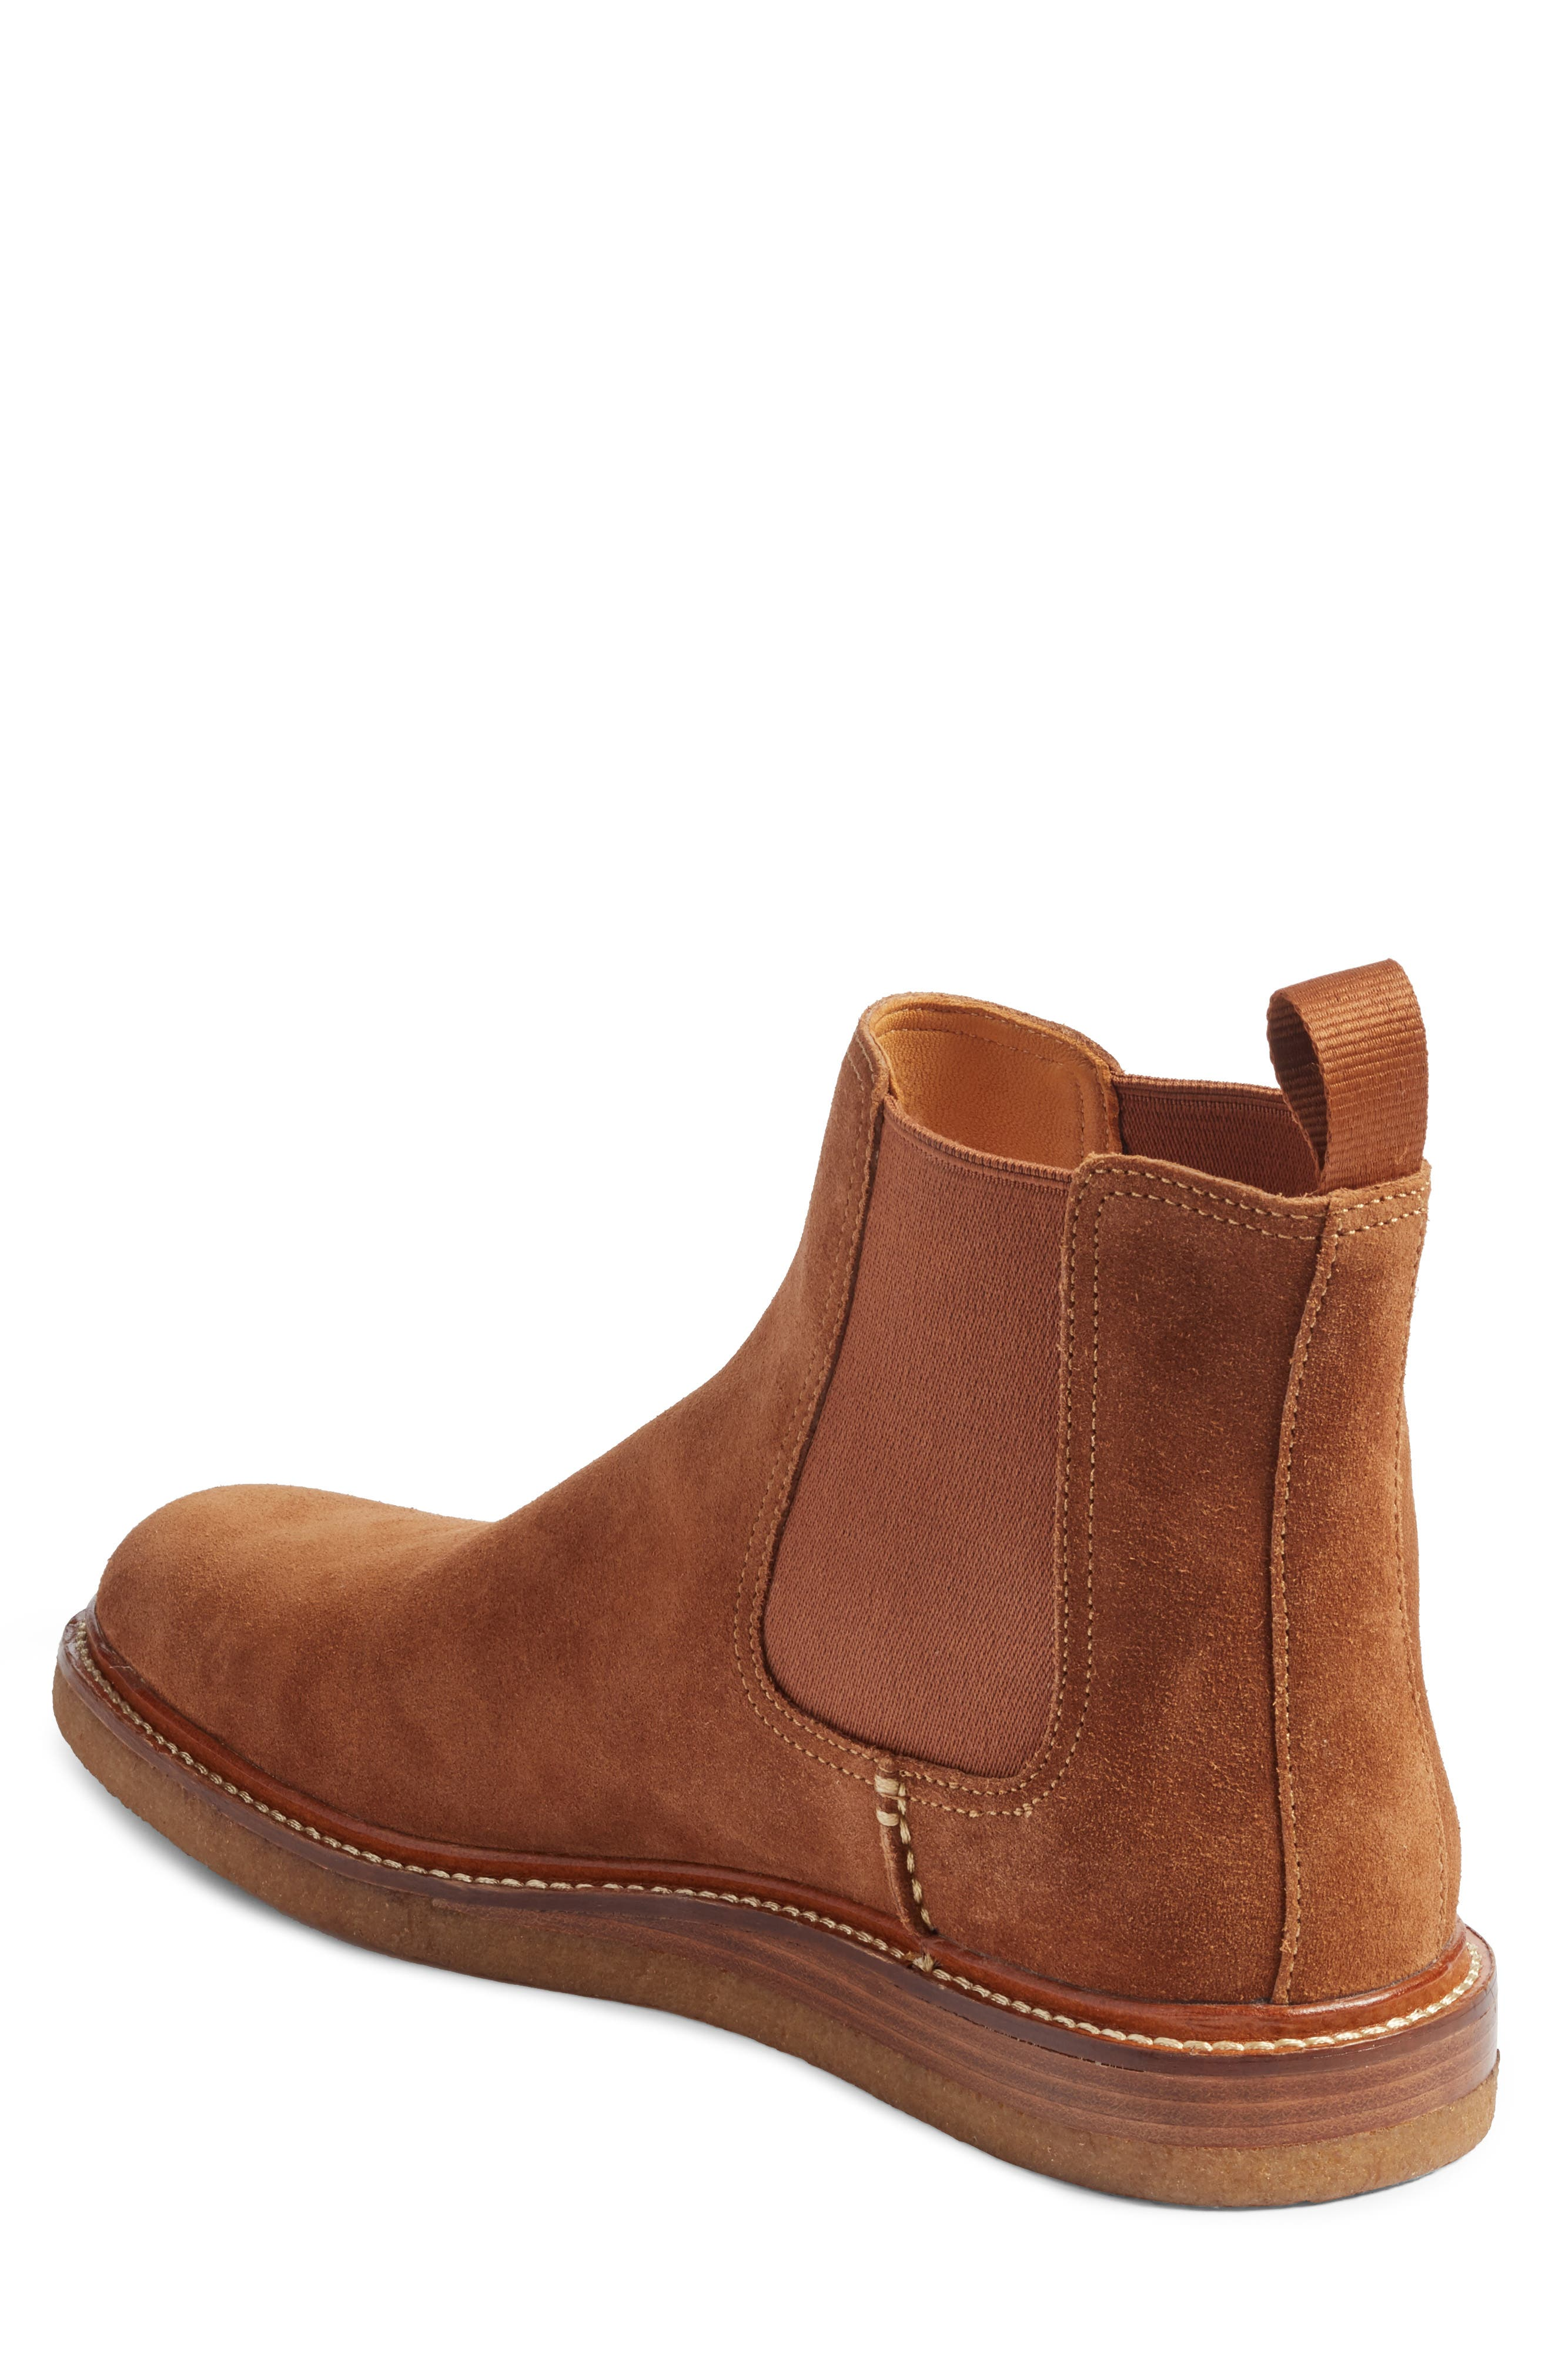 Leather Chelsea Boot,                             Alternate thumbnail 2, color,                             Dark Snuff Leather